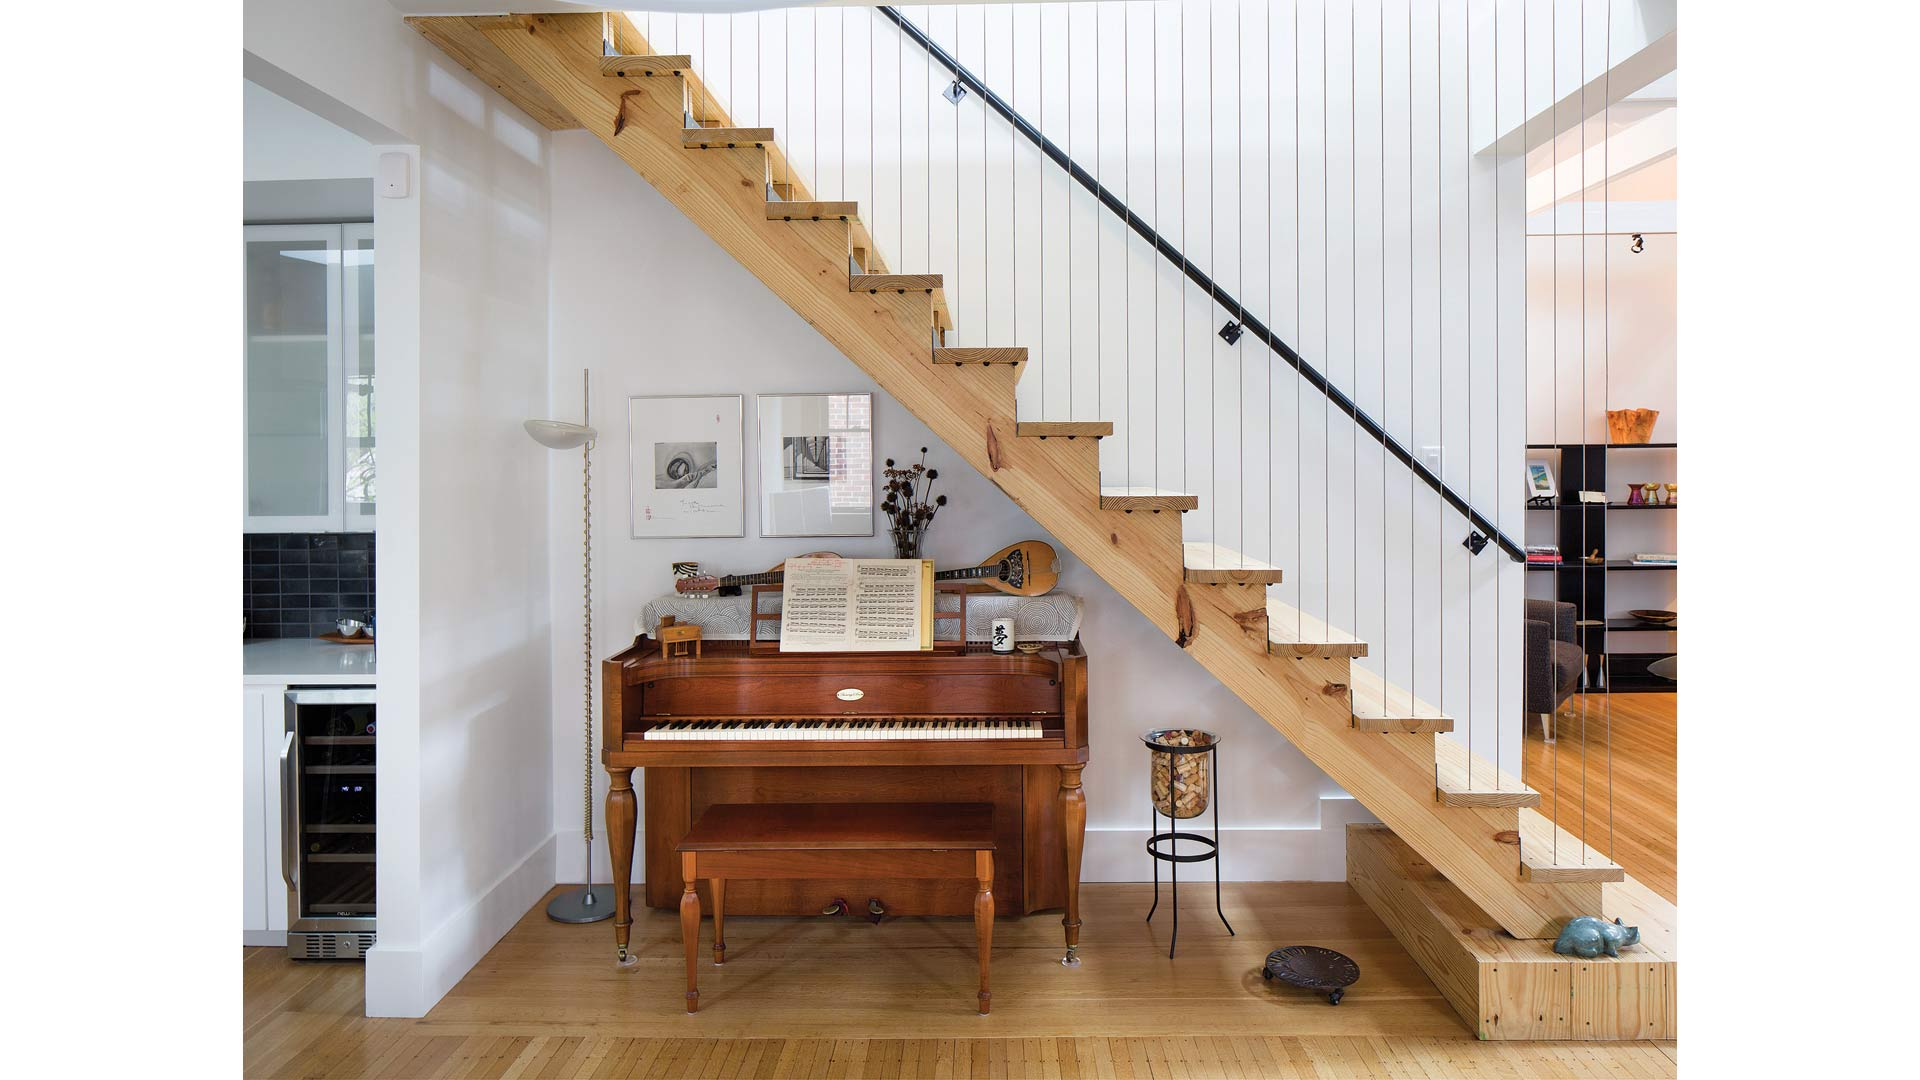 New stair incorporates vertical cable railing for side guard and integrates with piano below - Broad Ripple Modern Craftsman Dwelling on Carrollton Avenue - Indianapolis, Indiana